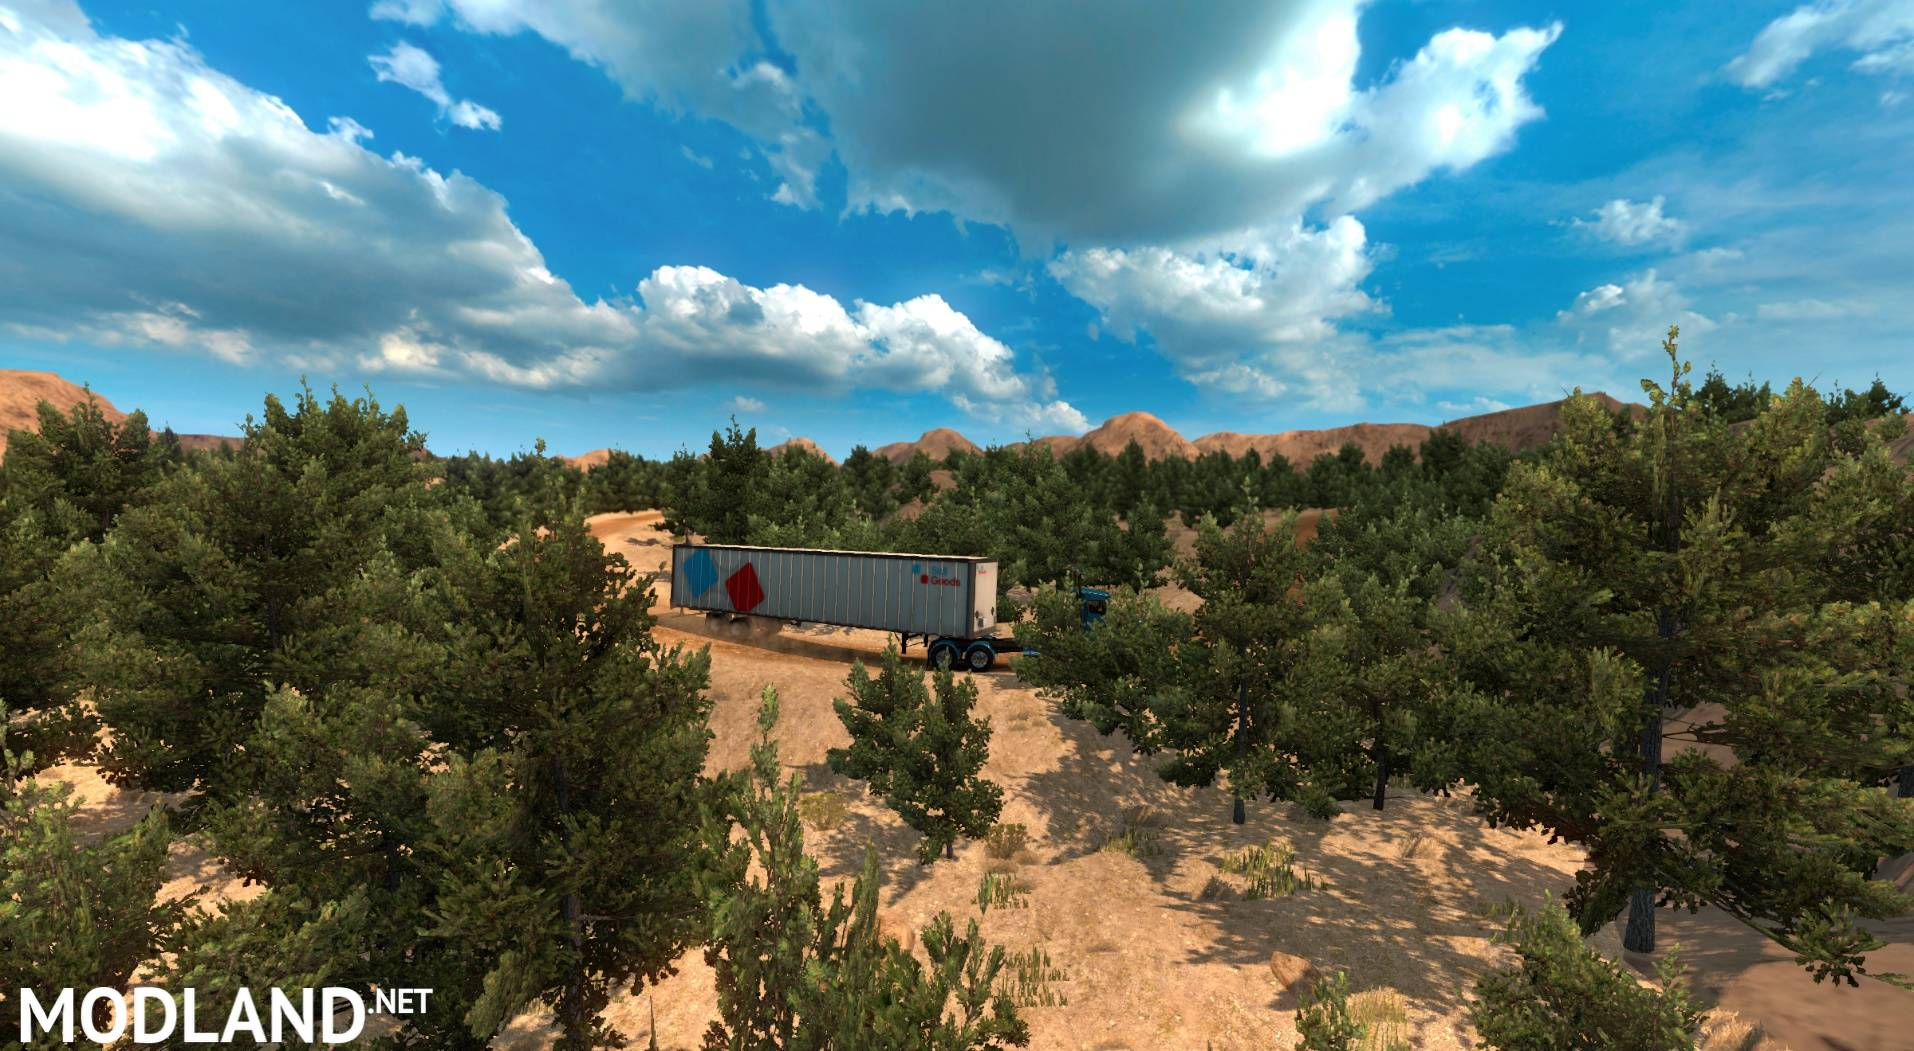 USA Offroad Map v 100 3